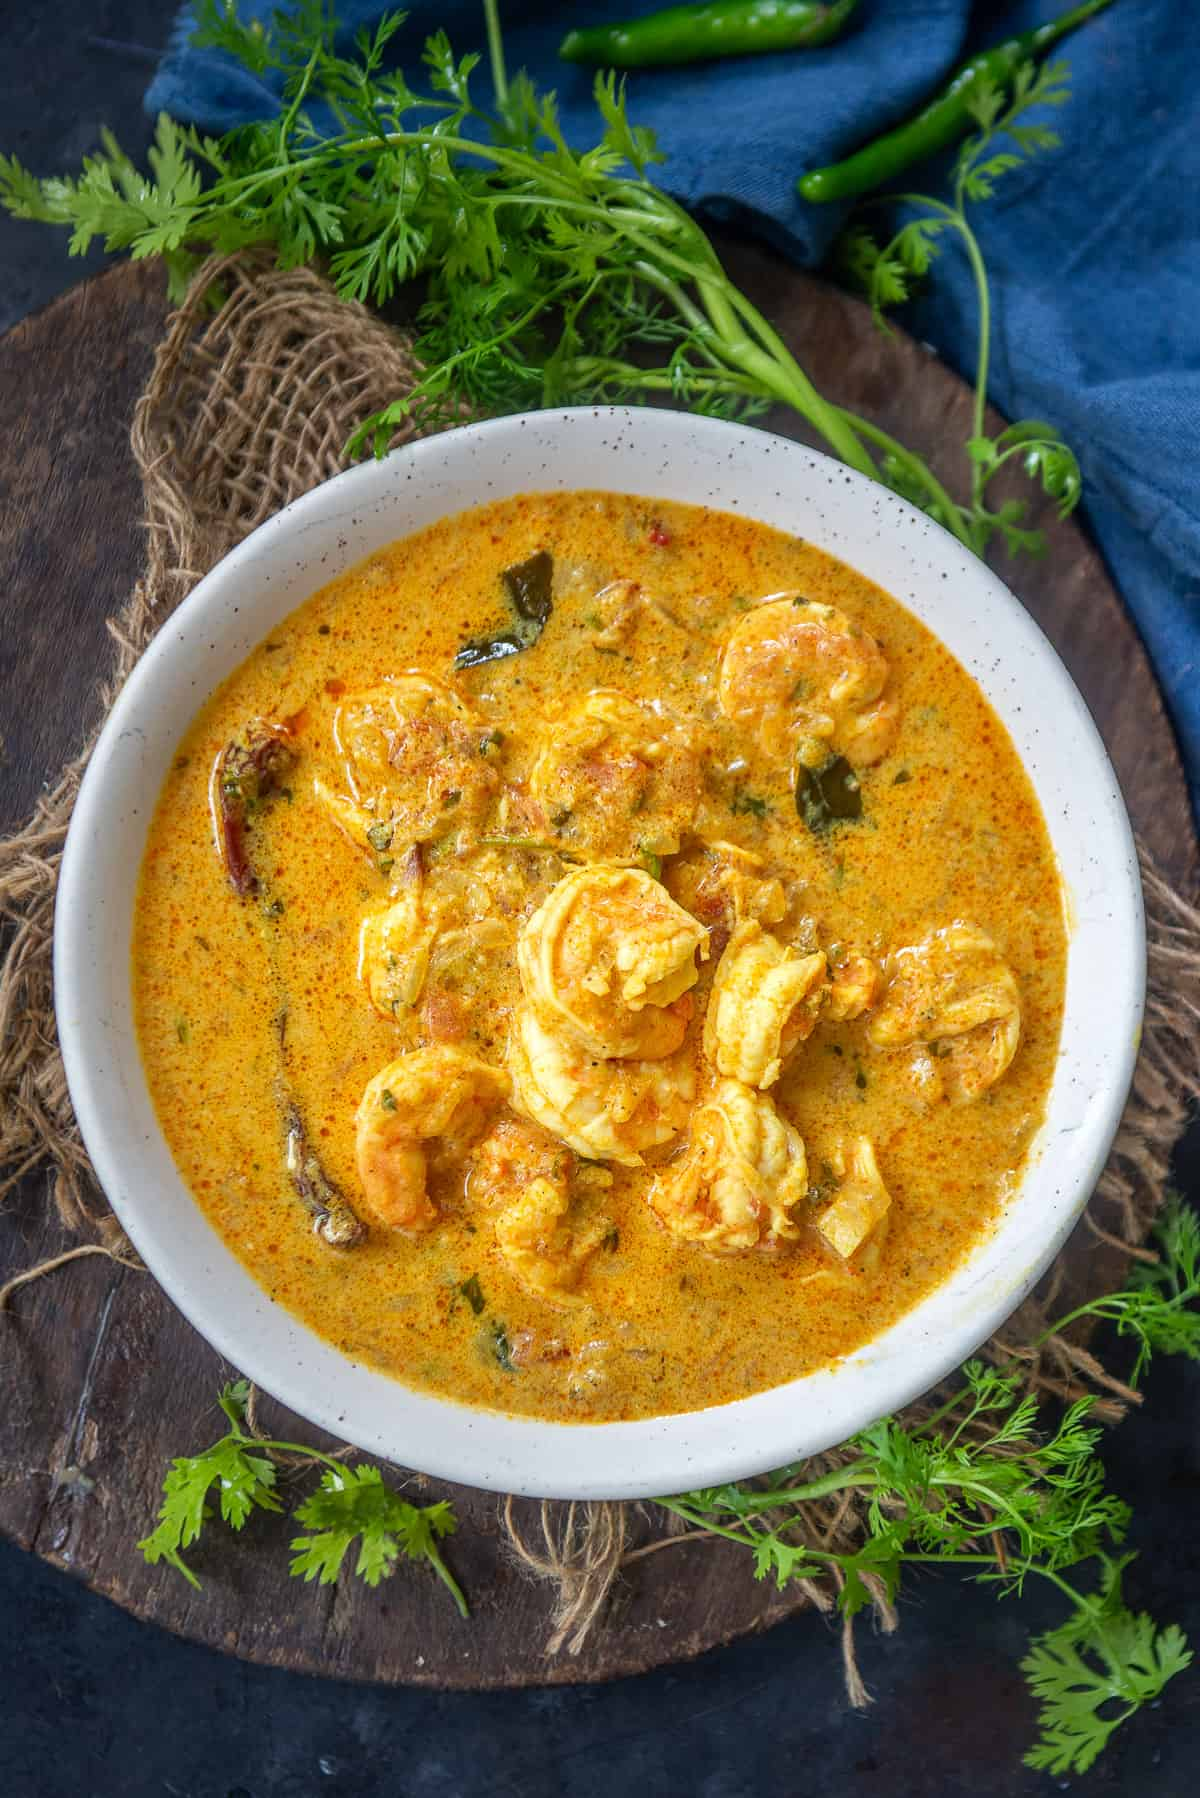 Prawn Coconut Curry served in a bowl.